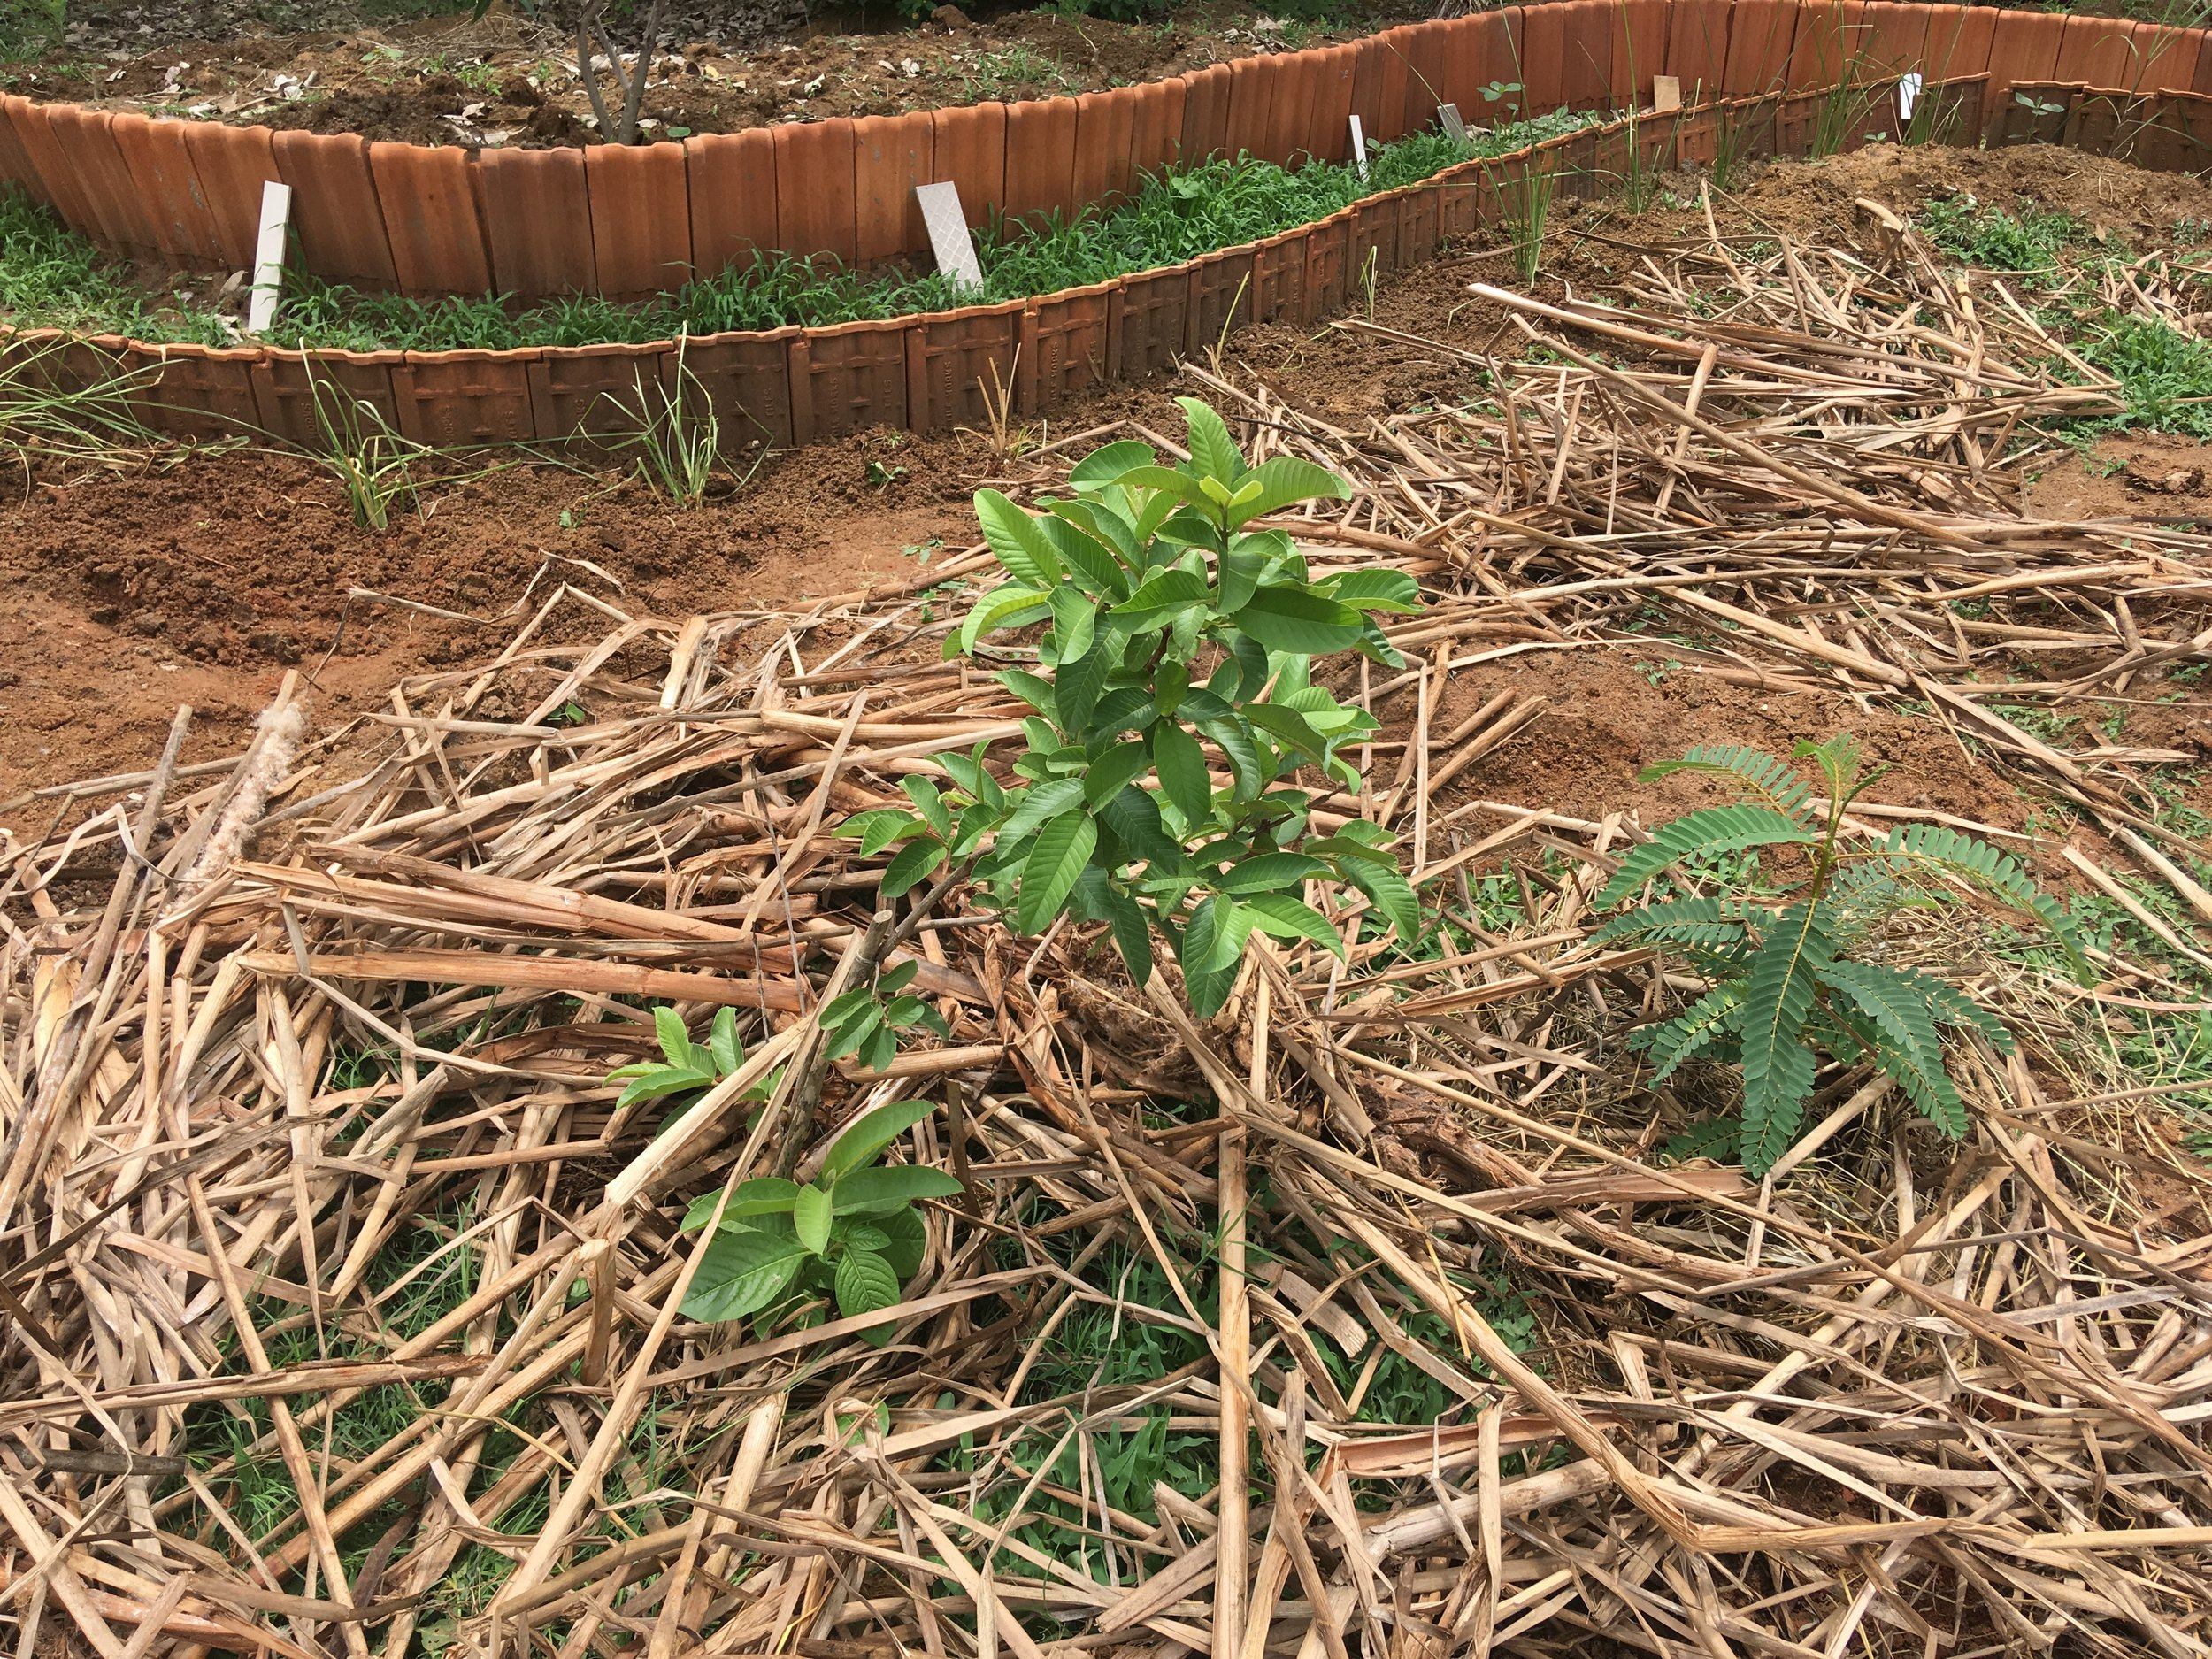 A Guava sapling mulched and planted along with a Sesbania nurse plant at our Jakkur Lake Community Garden project.